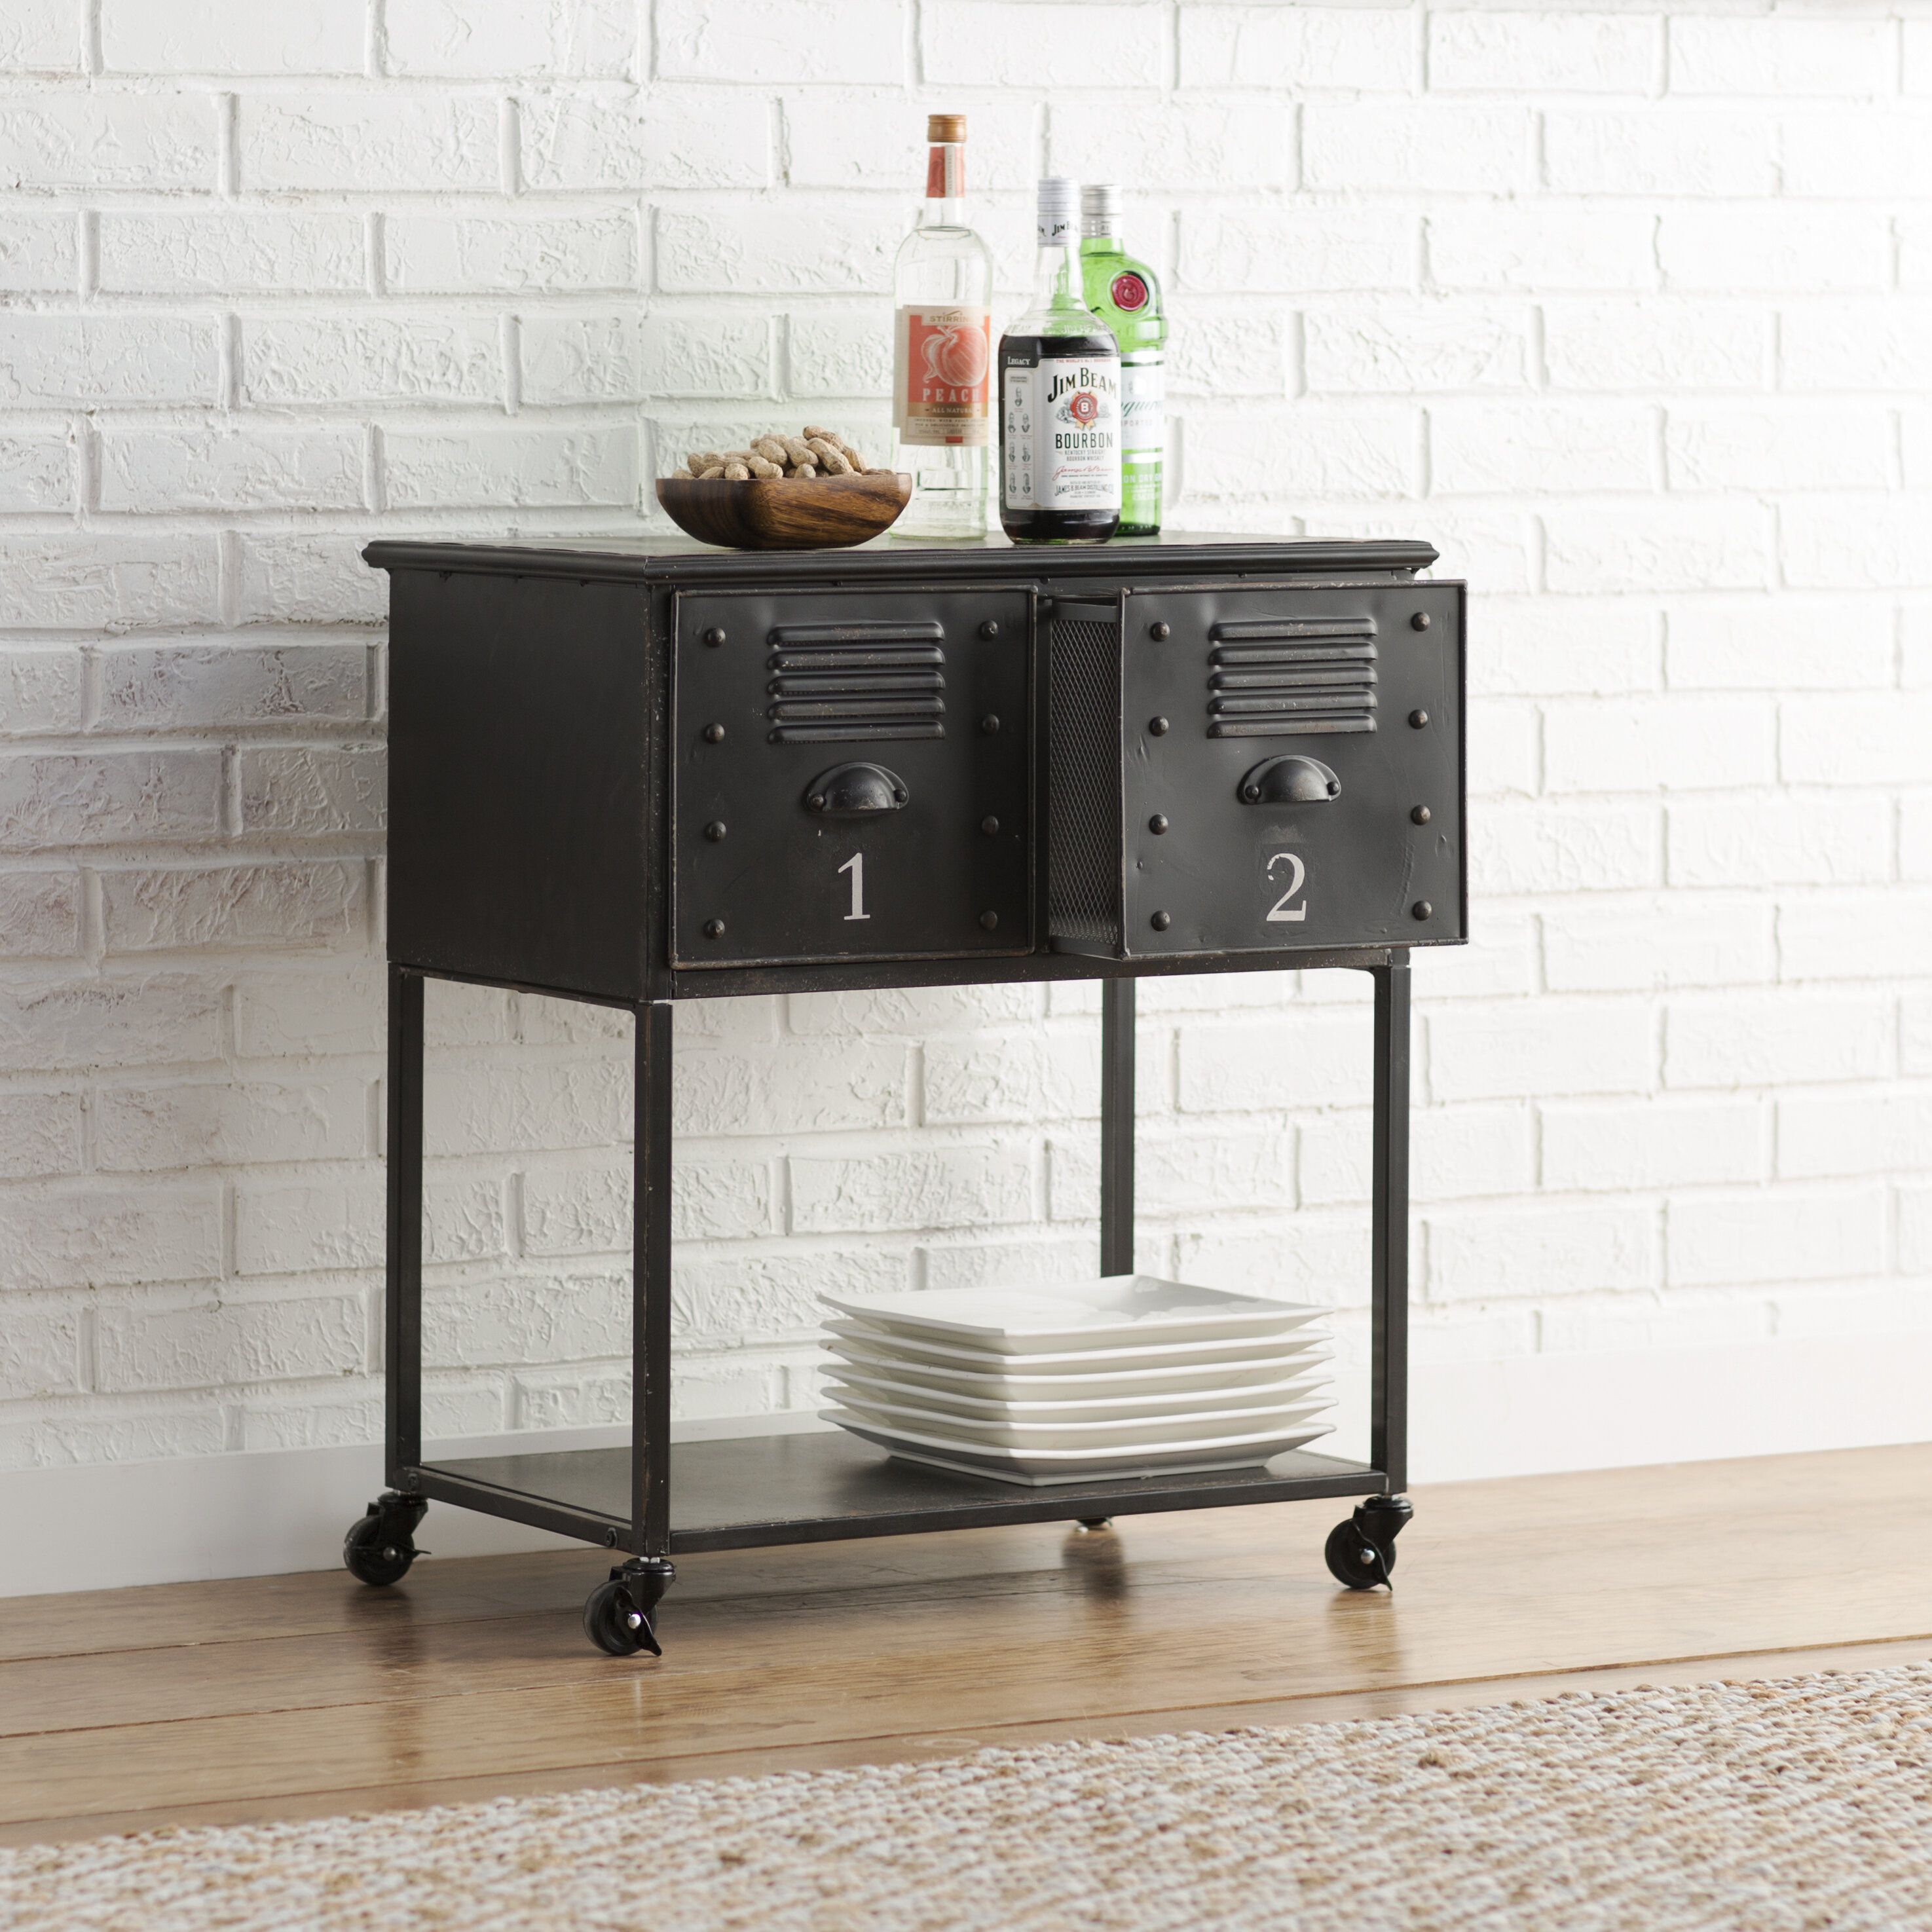 trent austin design alastor rolling cart table with 2 drawers